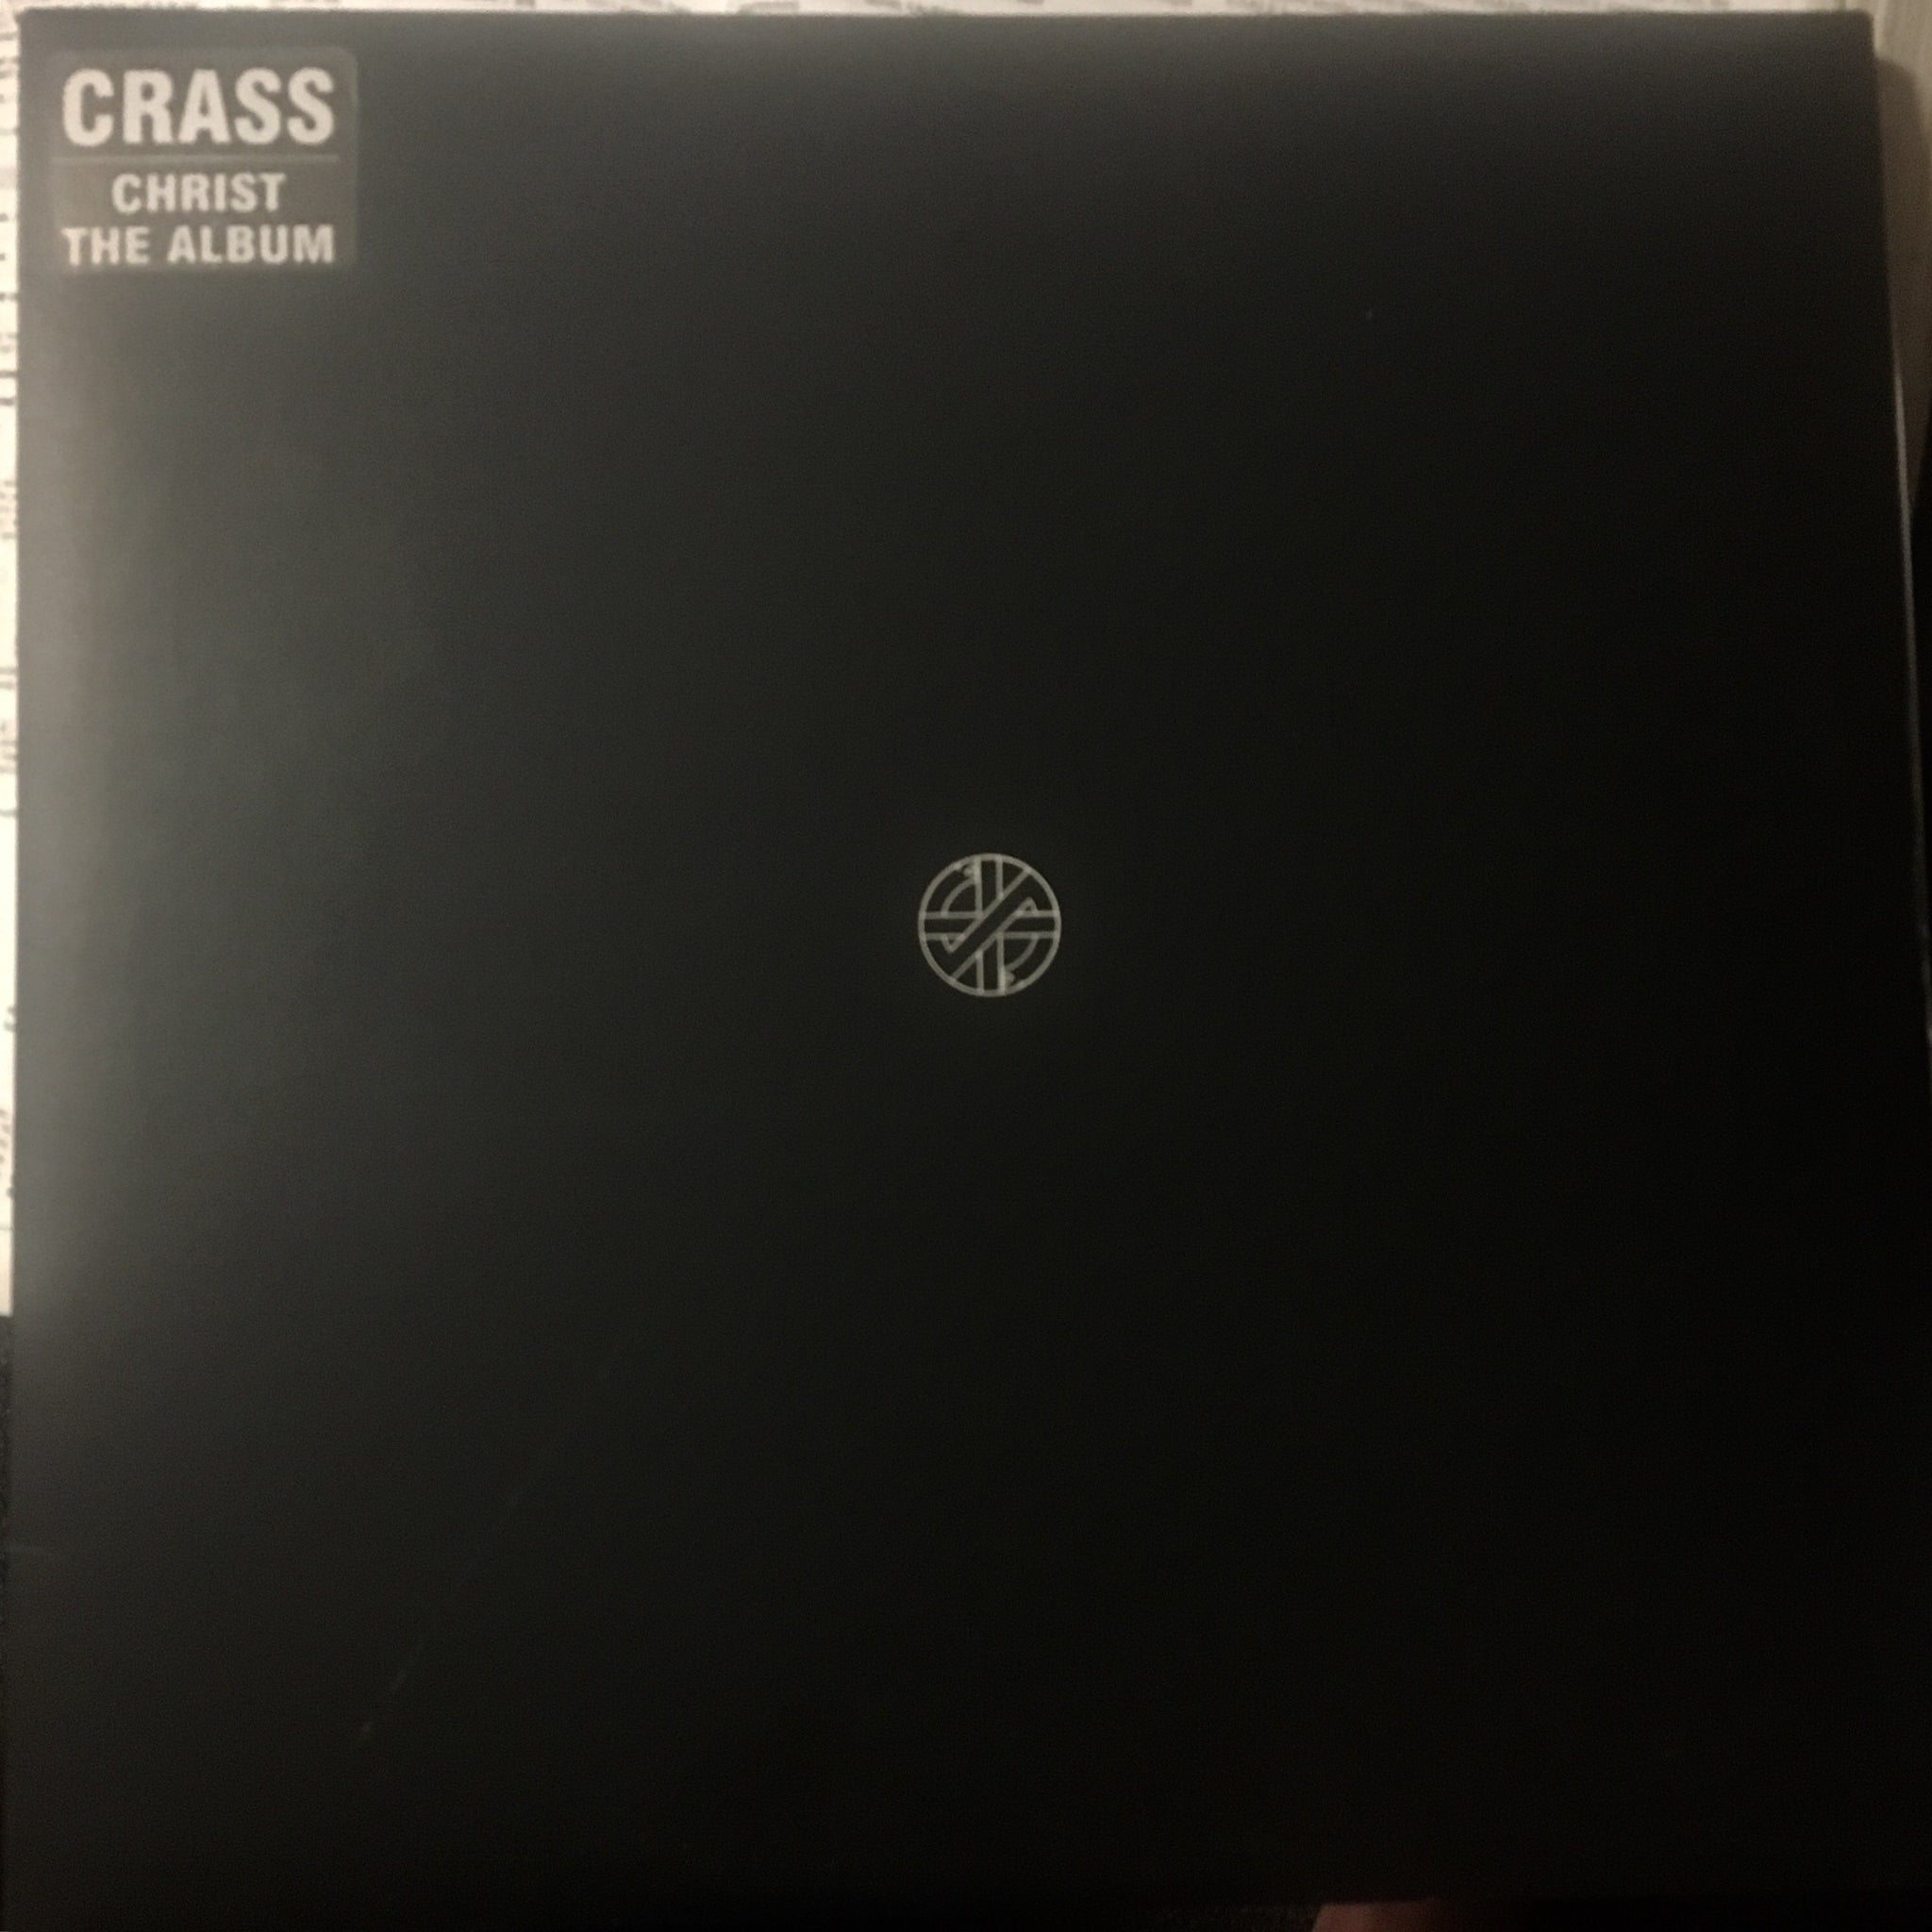 Crass - Christ the Album - Used LP